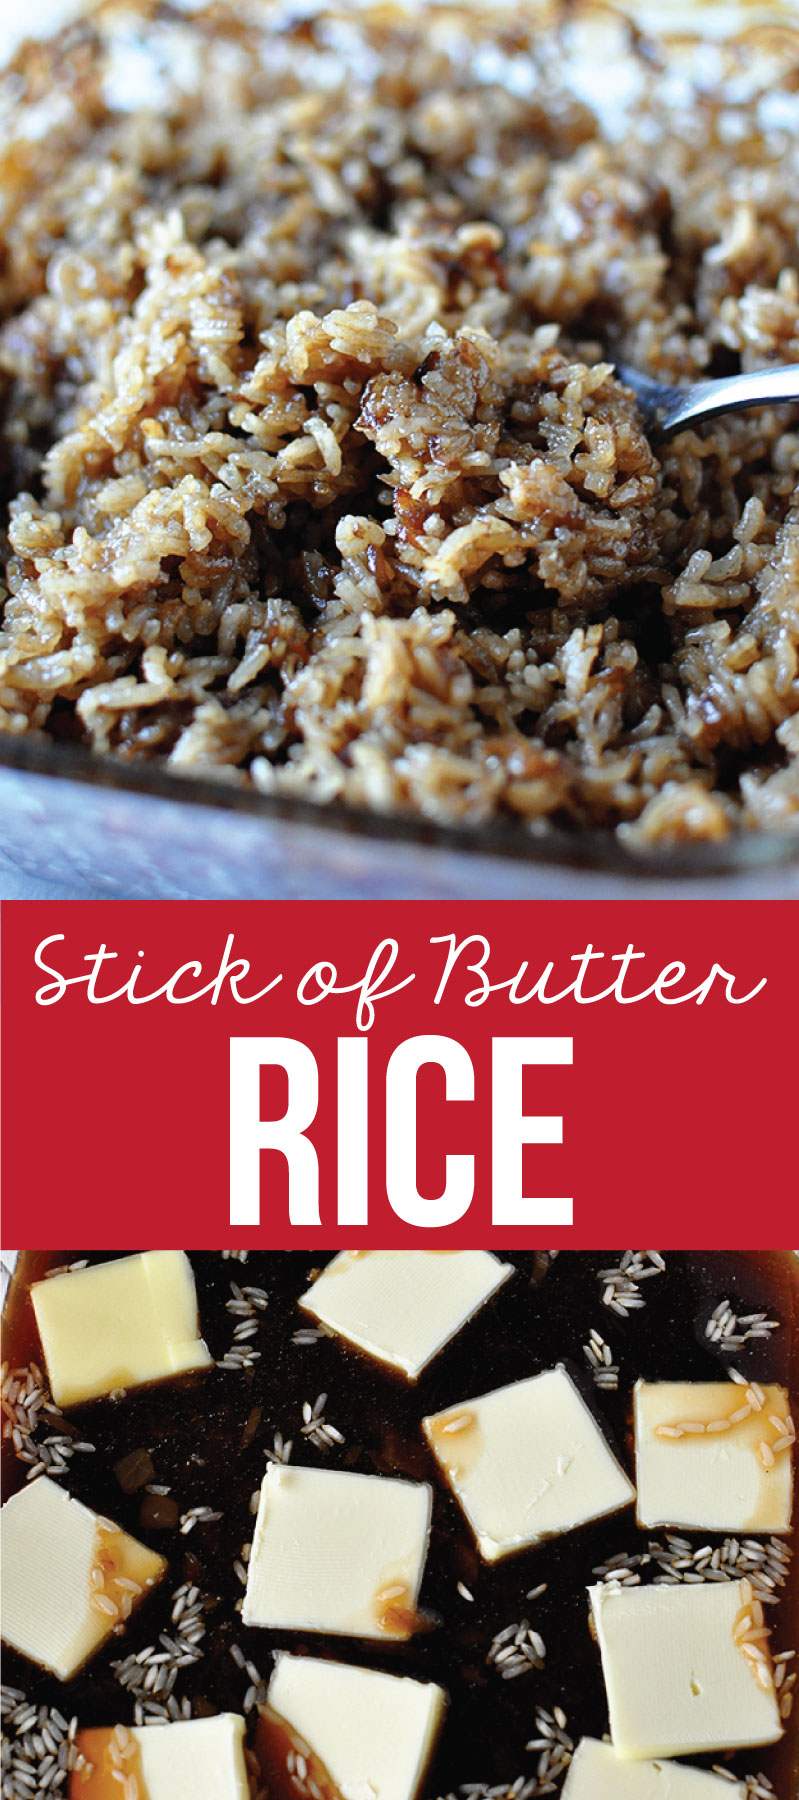 The Best Rice you'll ever eat- Stick of Butter Rice.  An old family favorite from my Great-Grandma! www.thirtyhandmadedays.com